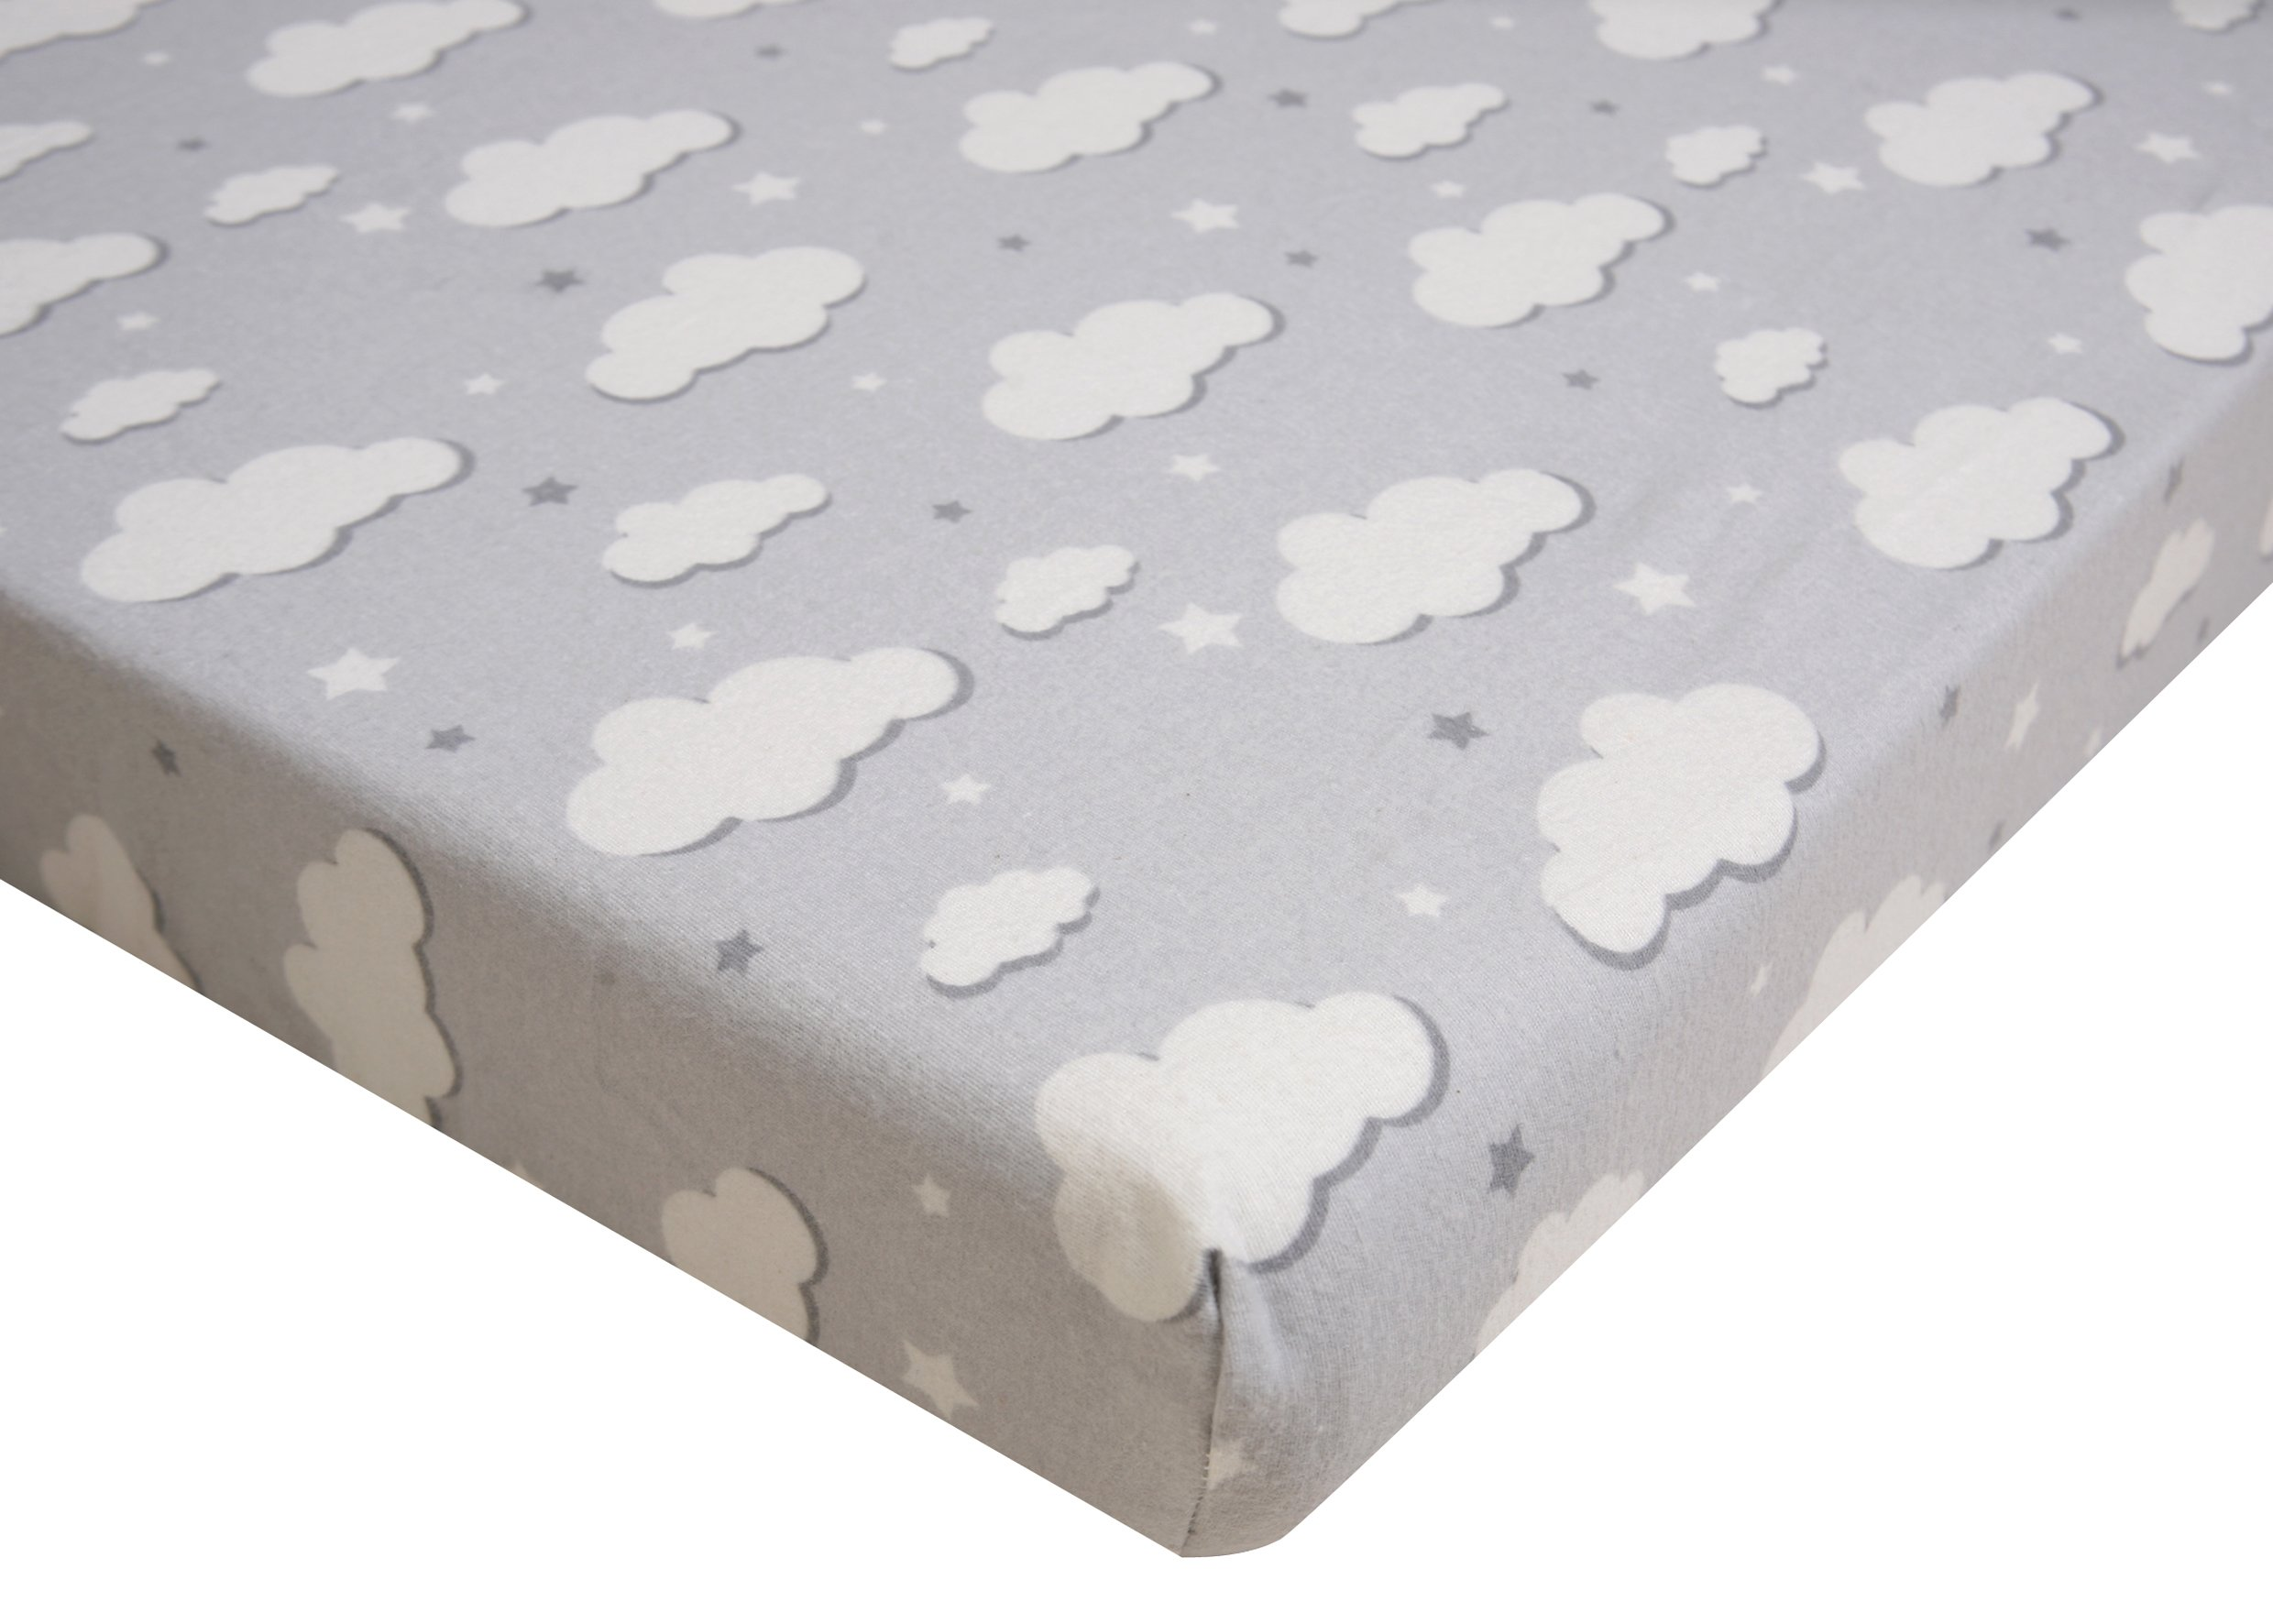 Pack N Play Playard Sheet 100% Premium Cotton Flannel,Super SOFT, Fits Perfectly Any Standard Playard Mattress up to 3'' Thick, CLOUDS